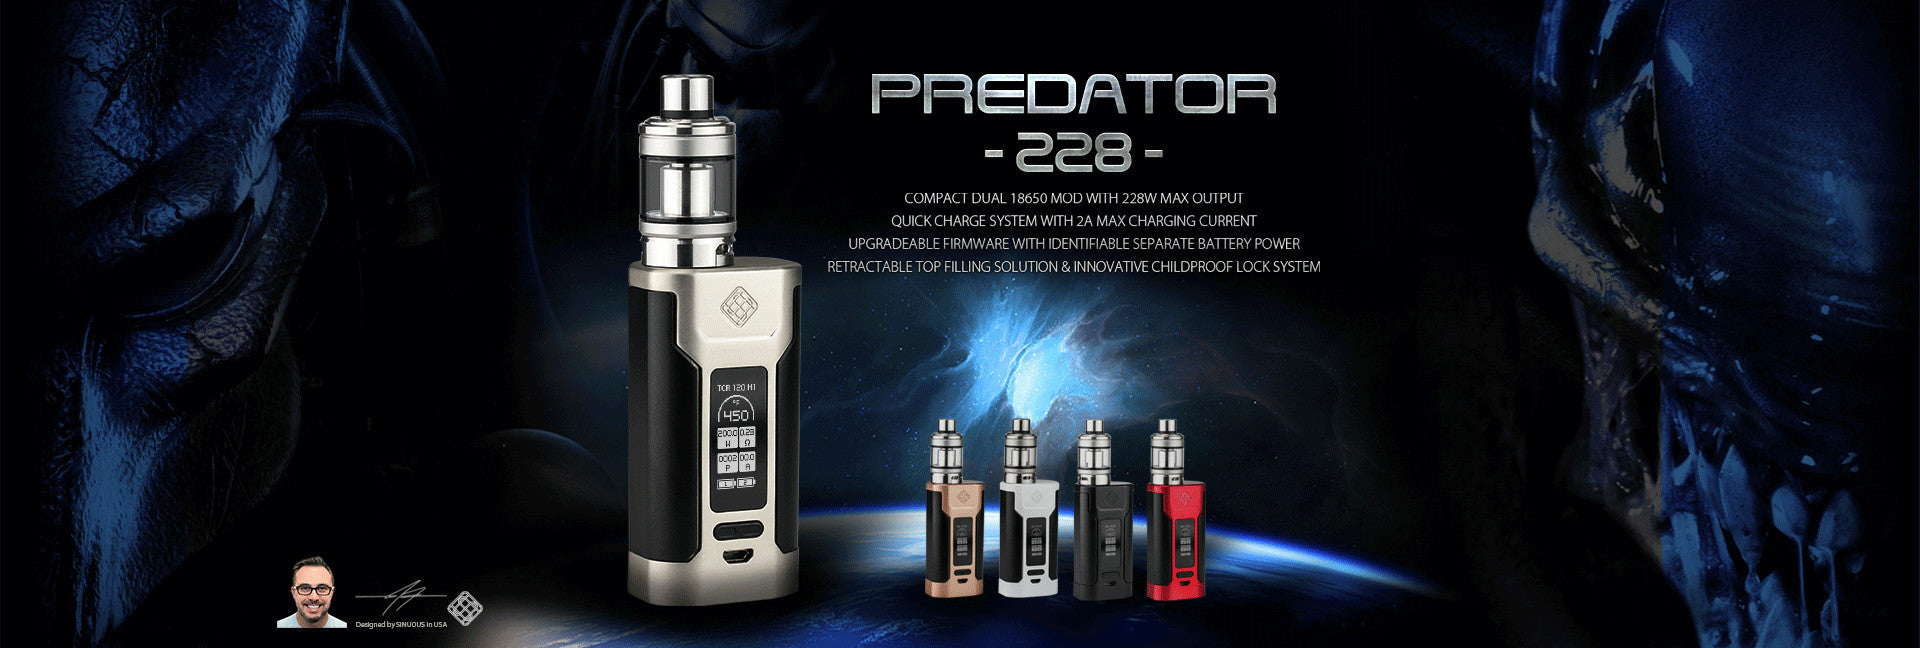 Wismec Predator 228 with Elabo